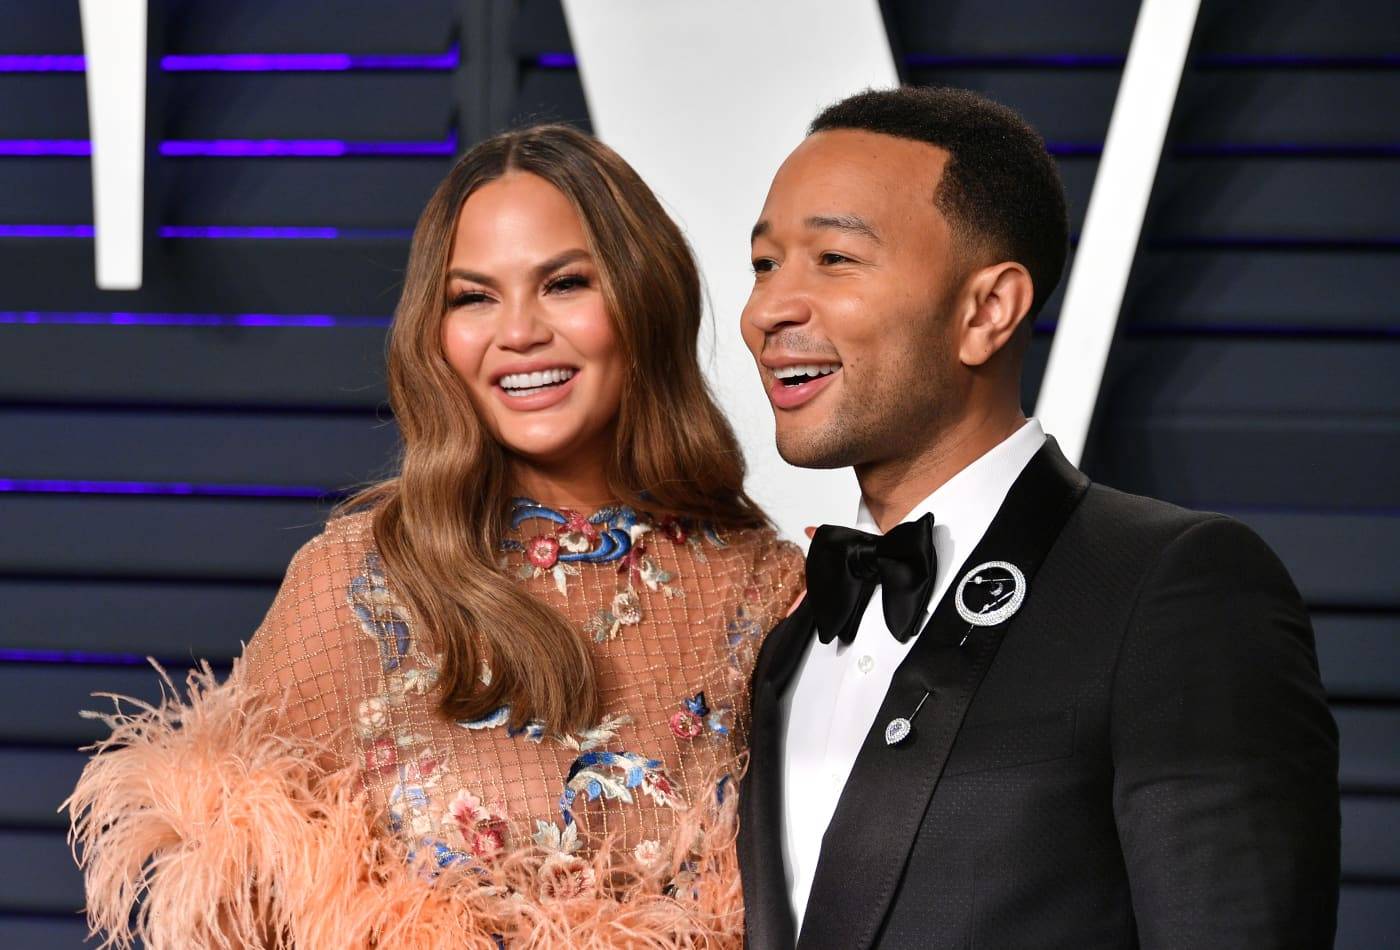 From house managers to overnight nannies, Chrissy Teigen gets real about how rich people do work-life balance